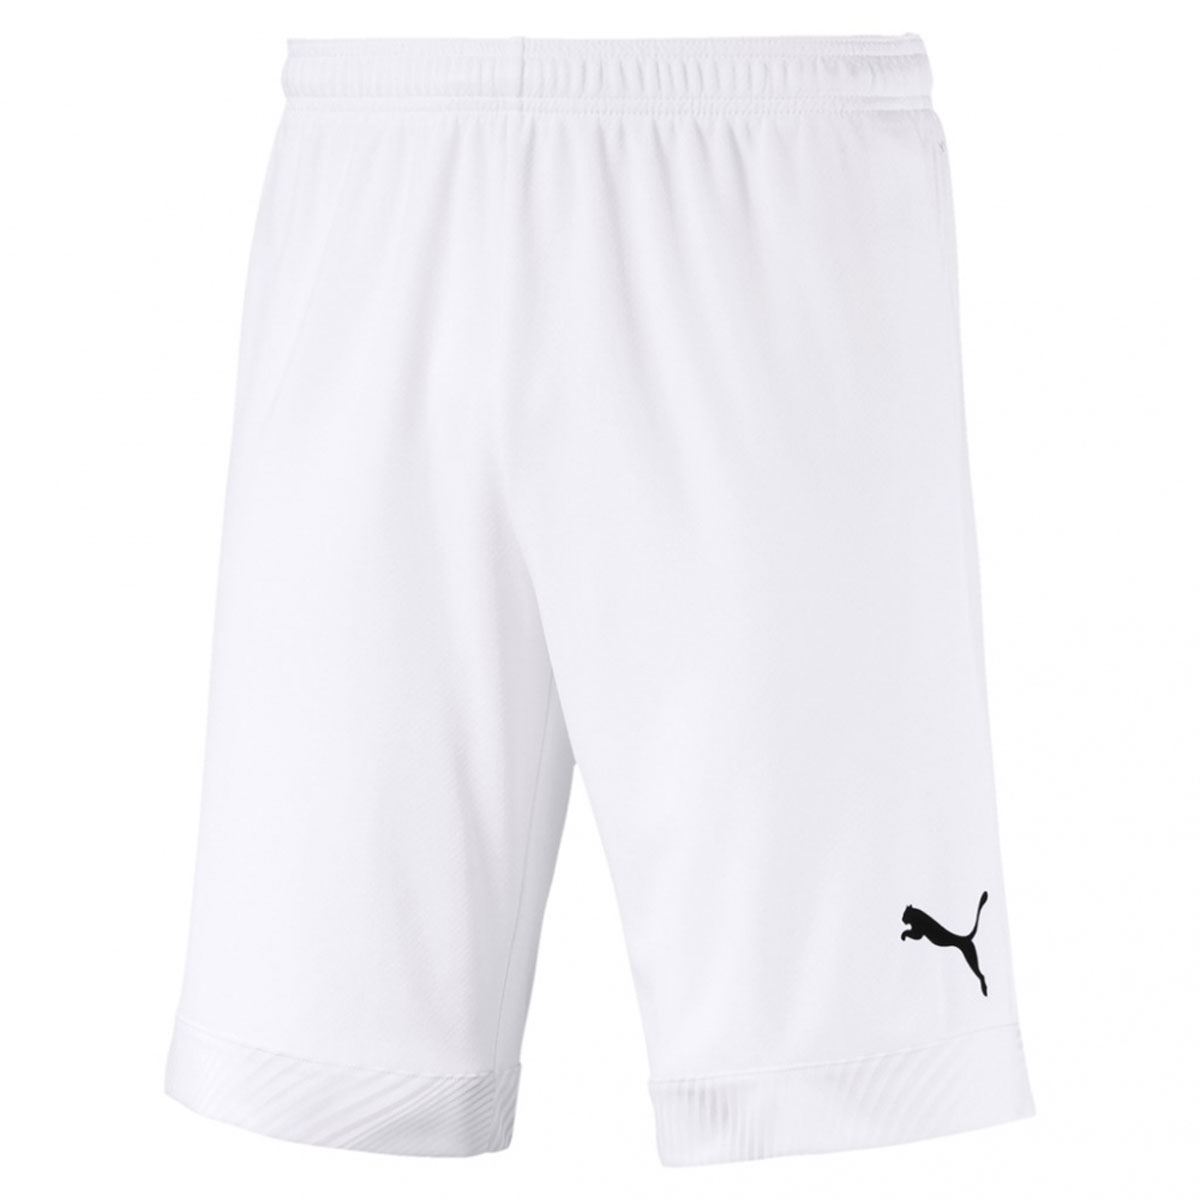 Men's Cup Short, White, swatch